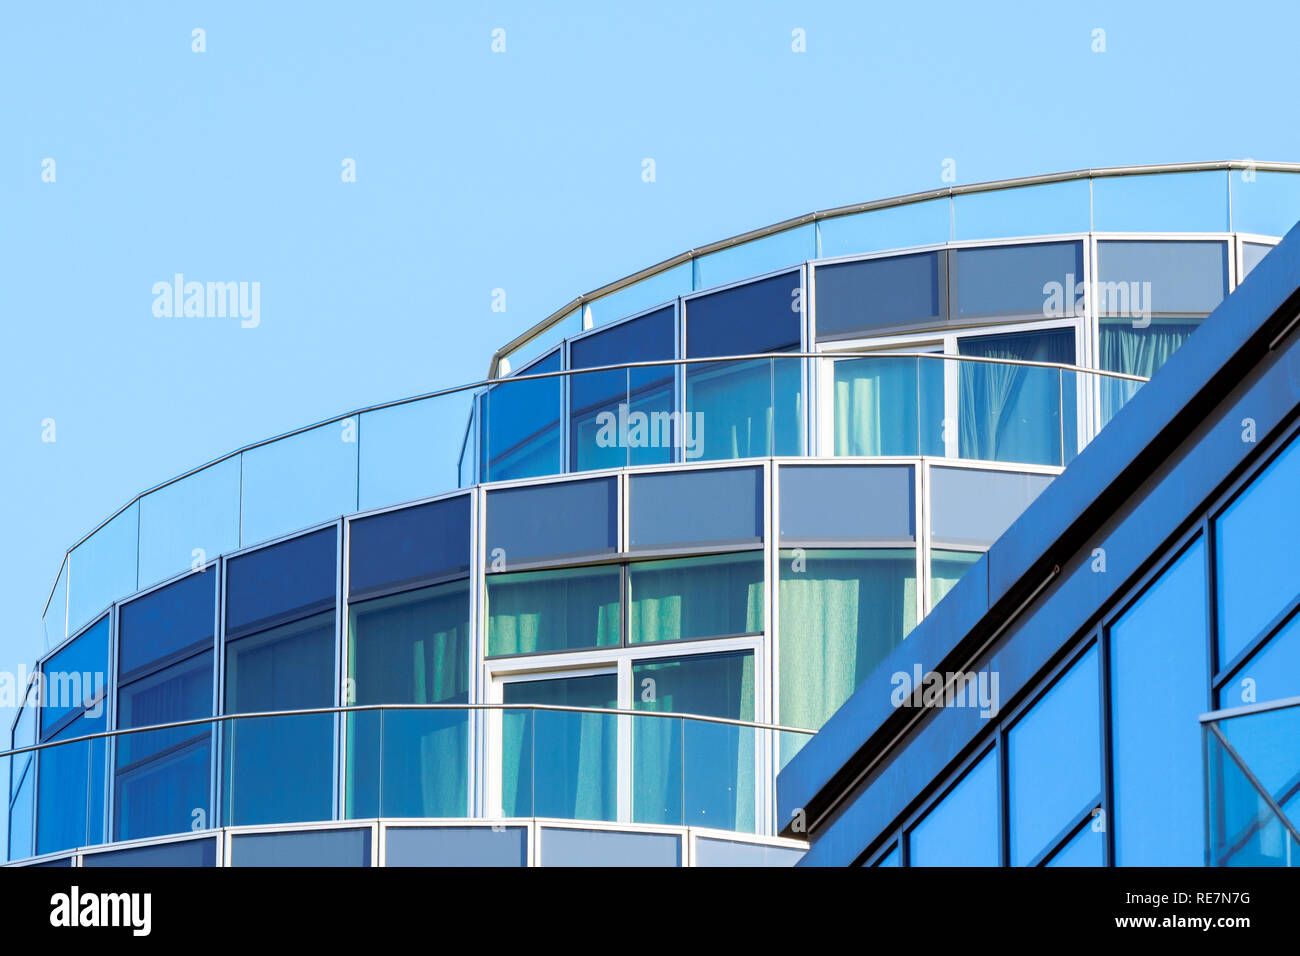 Detail of the Pinnacle building apartments in Battersea Reach, Wandsworth - South West London, England - Stock Image